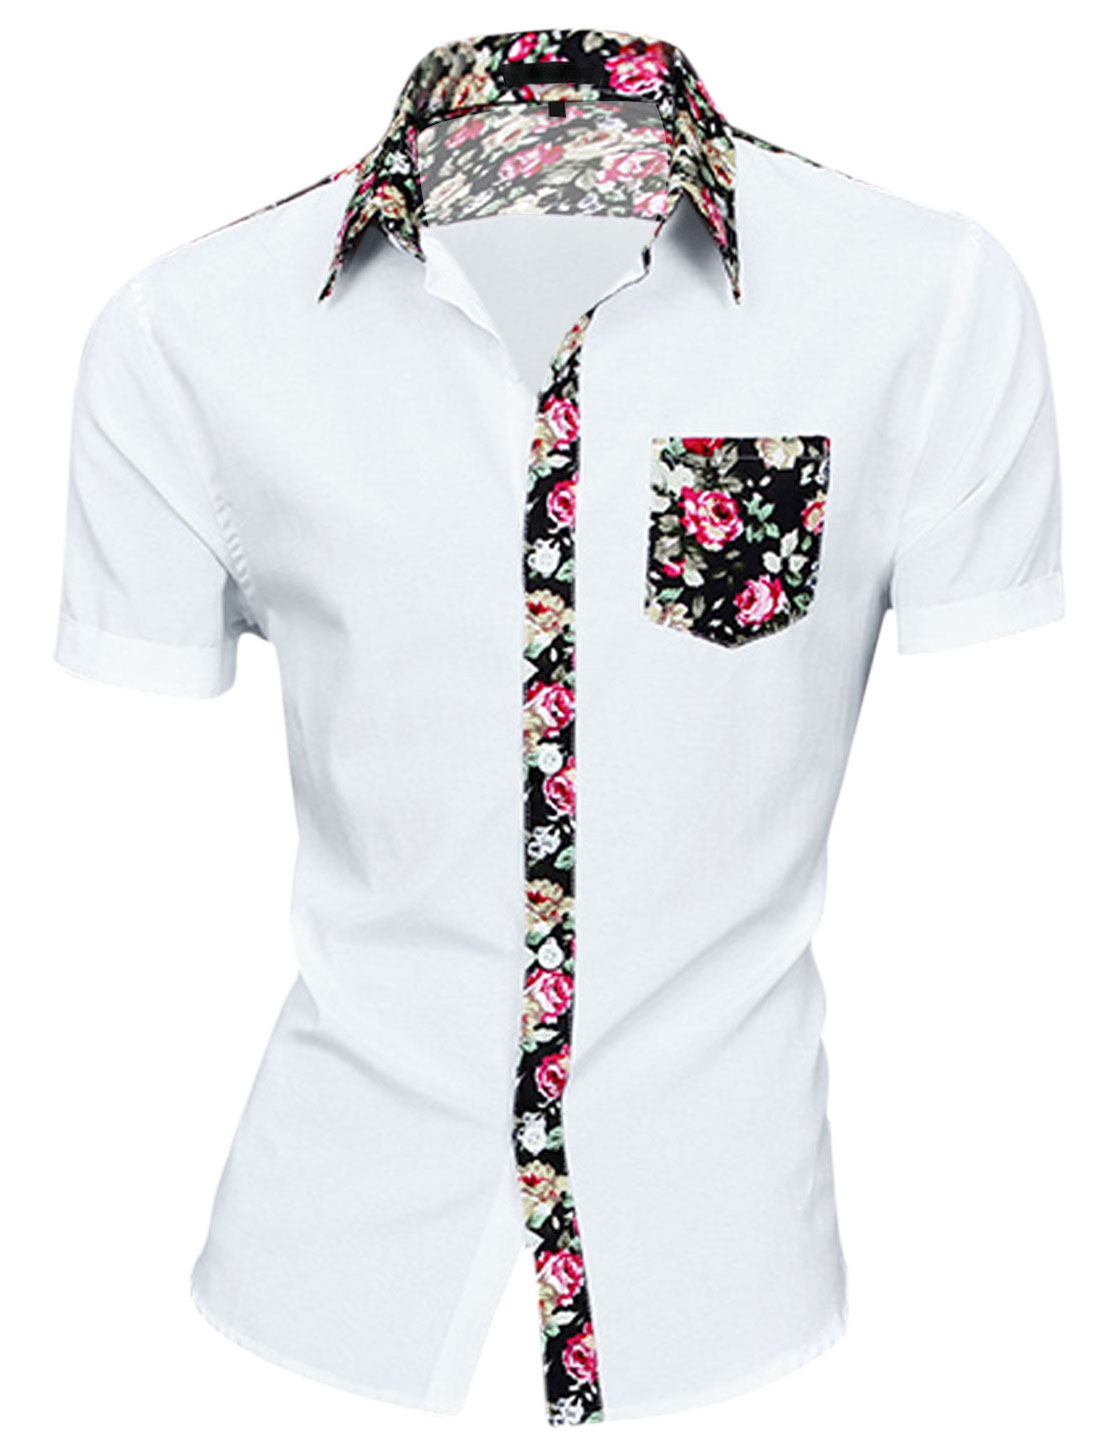 Men Chest Pocket Floral Print Round Hem Short Sleeve Button Down Shirt White S